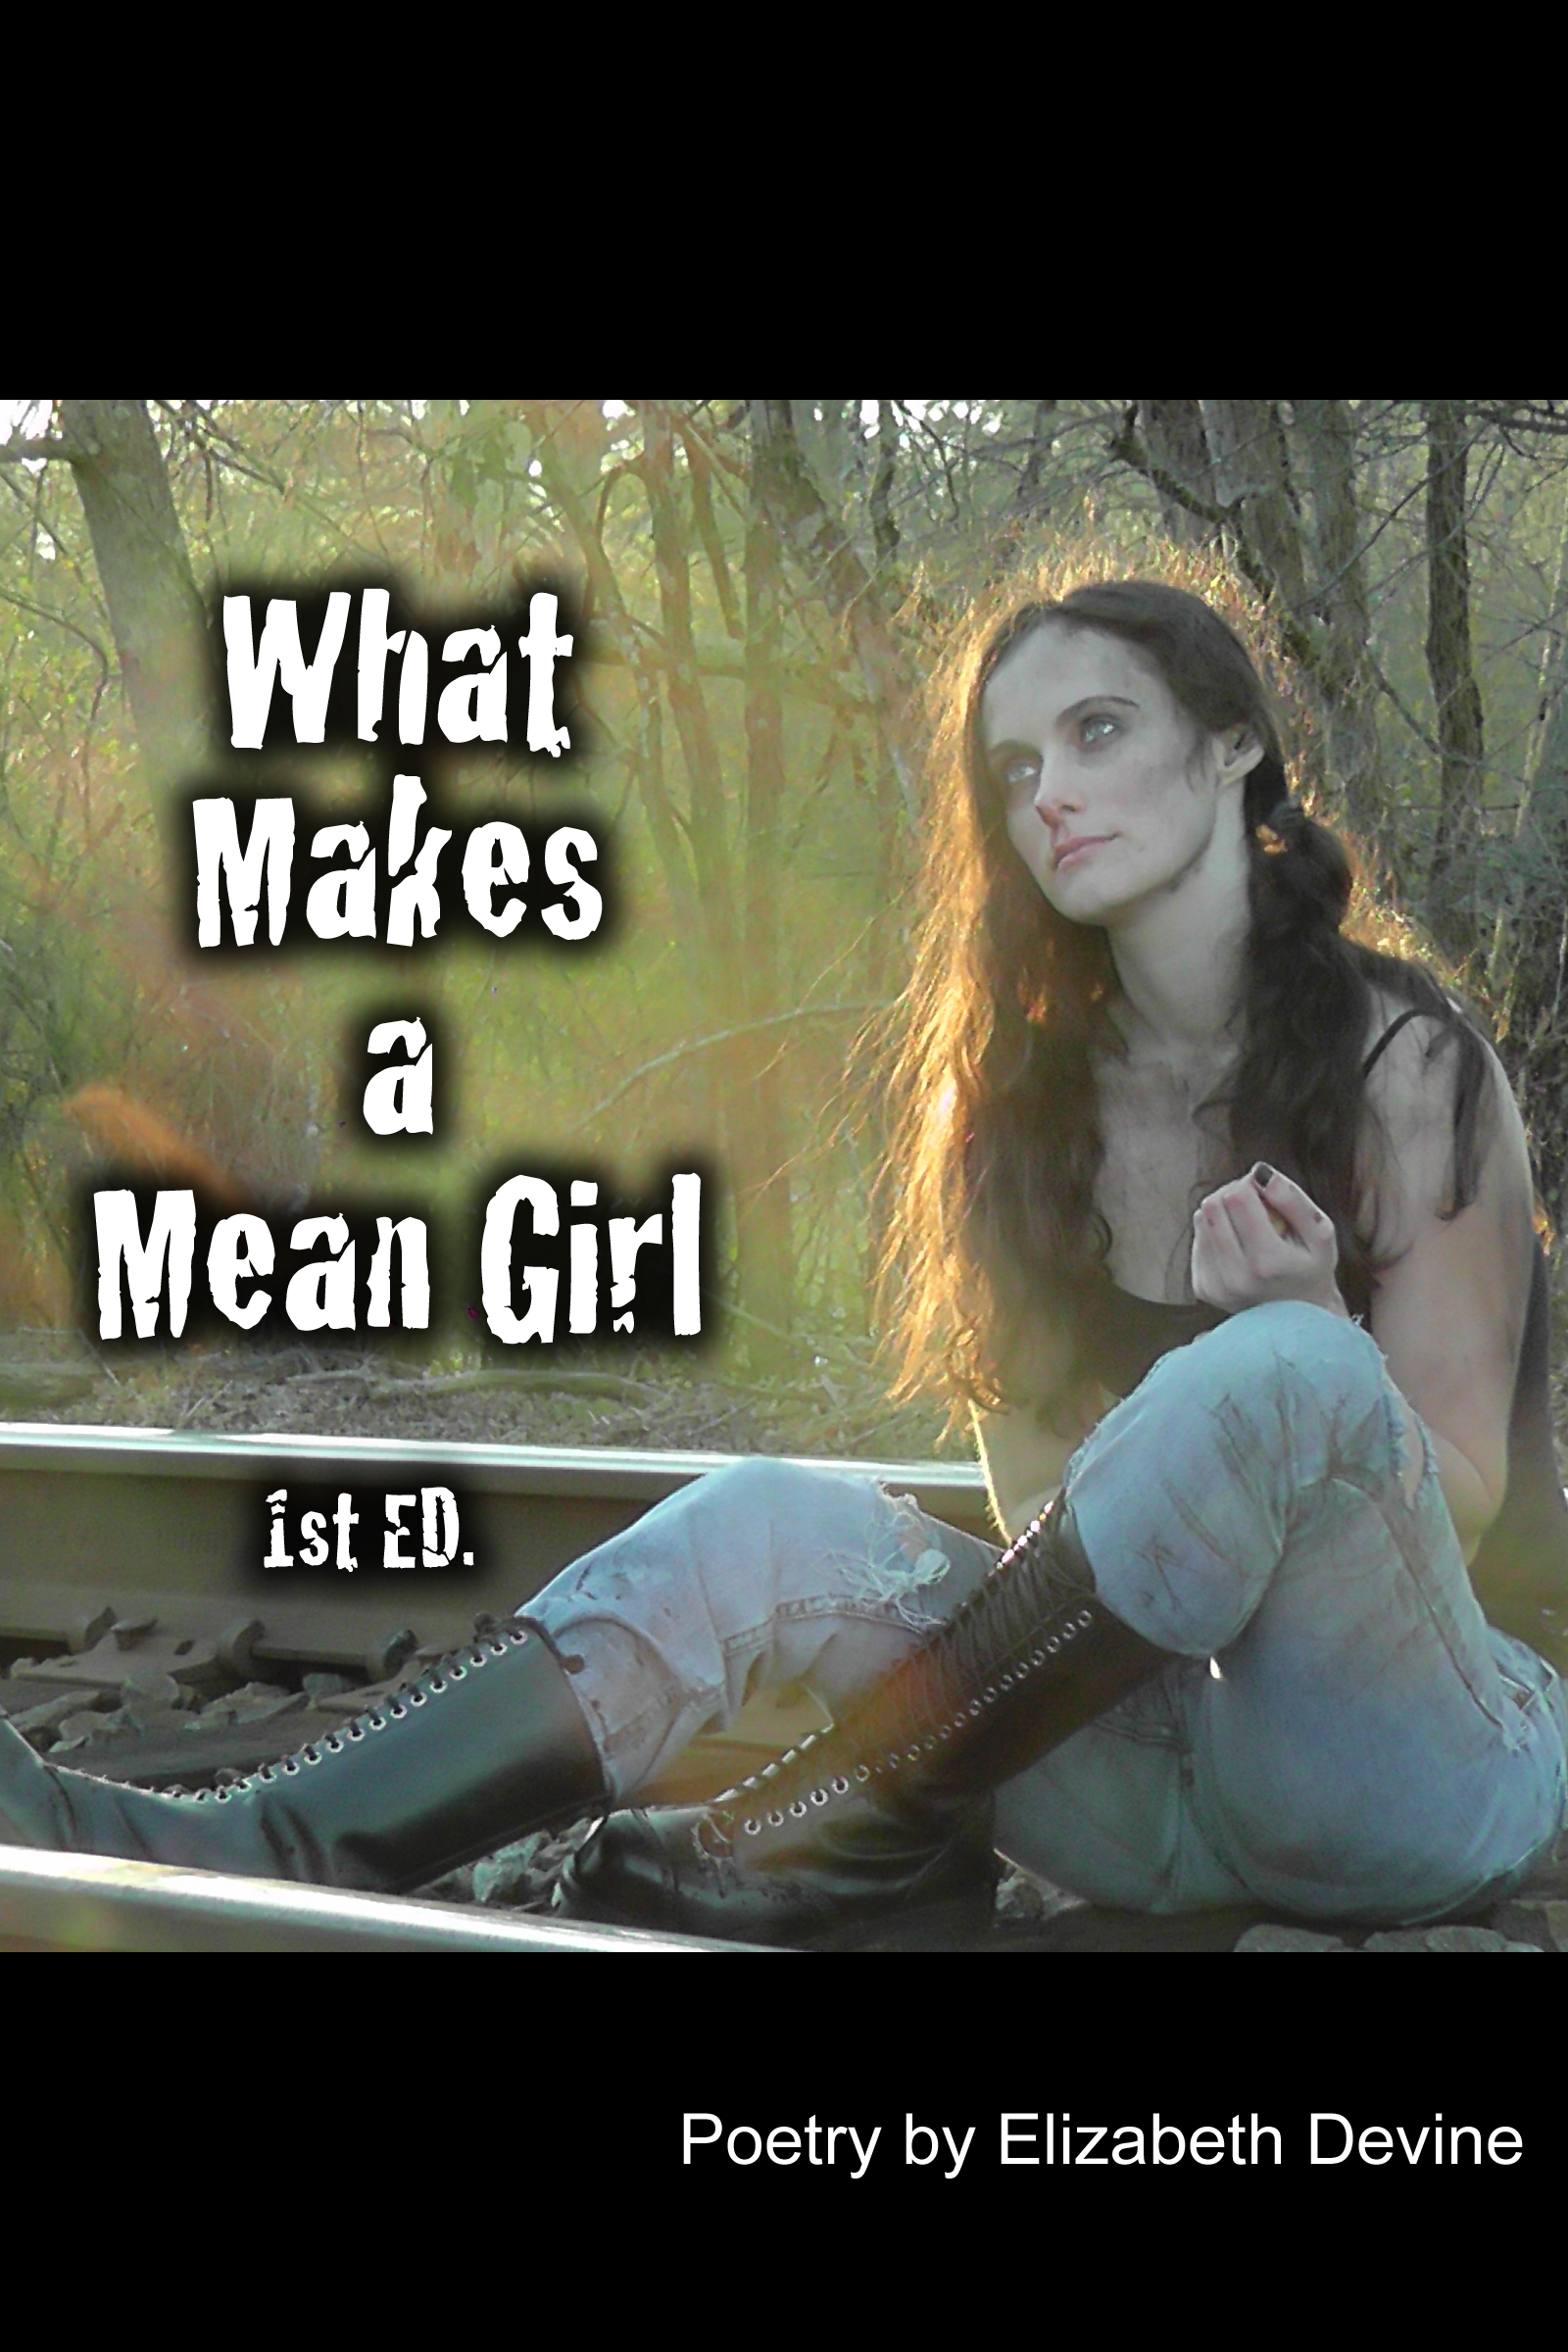 What Makes a Mean Girl